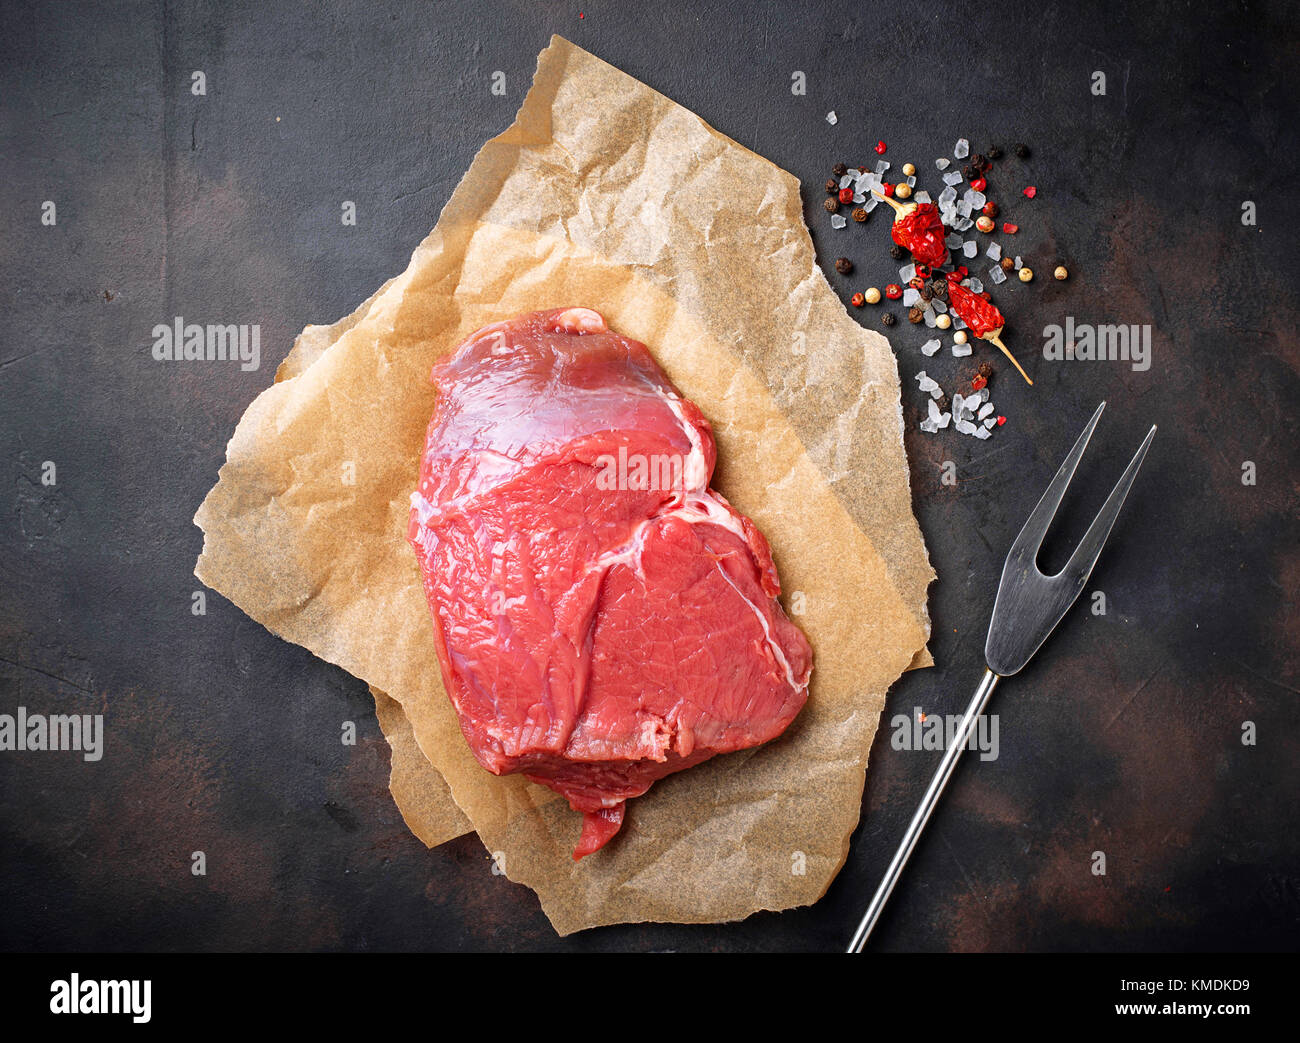 Raw meat steak with spices on rusty background - Stock Image